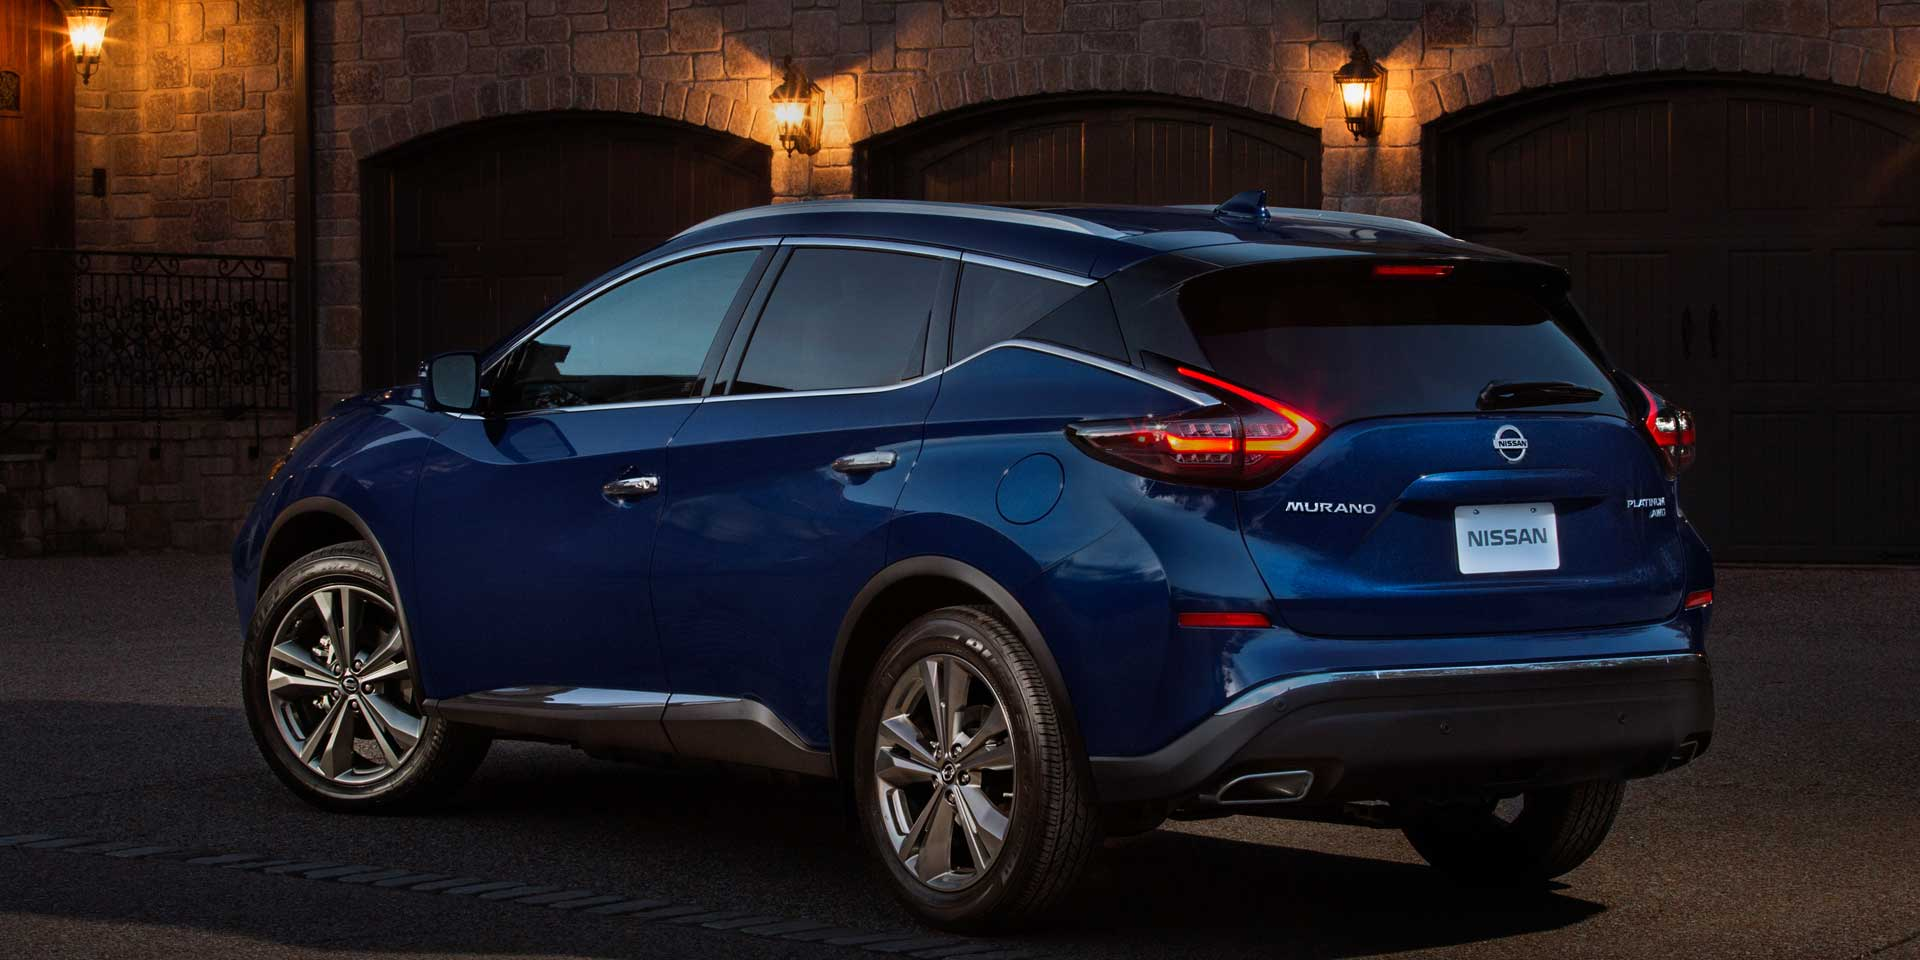 2019 - Nissan - Murano - Vehicles on Display | Chicago ...